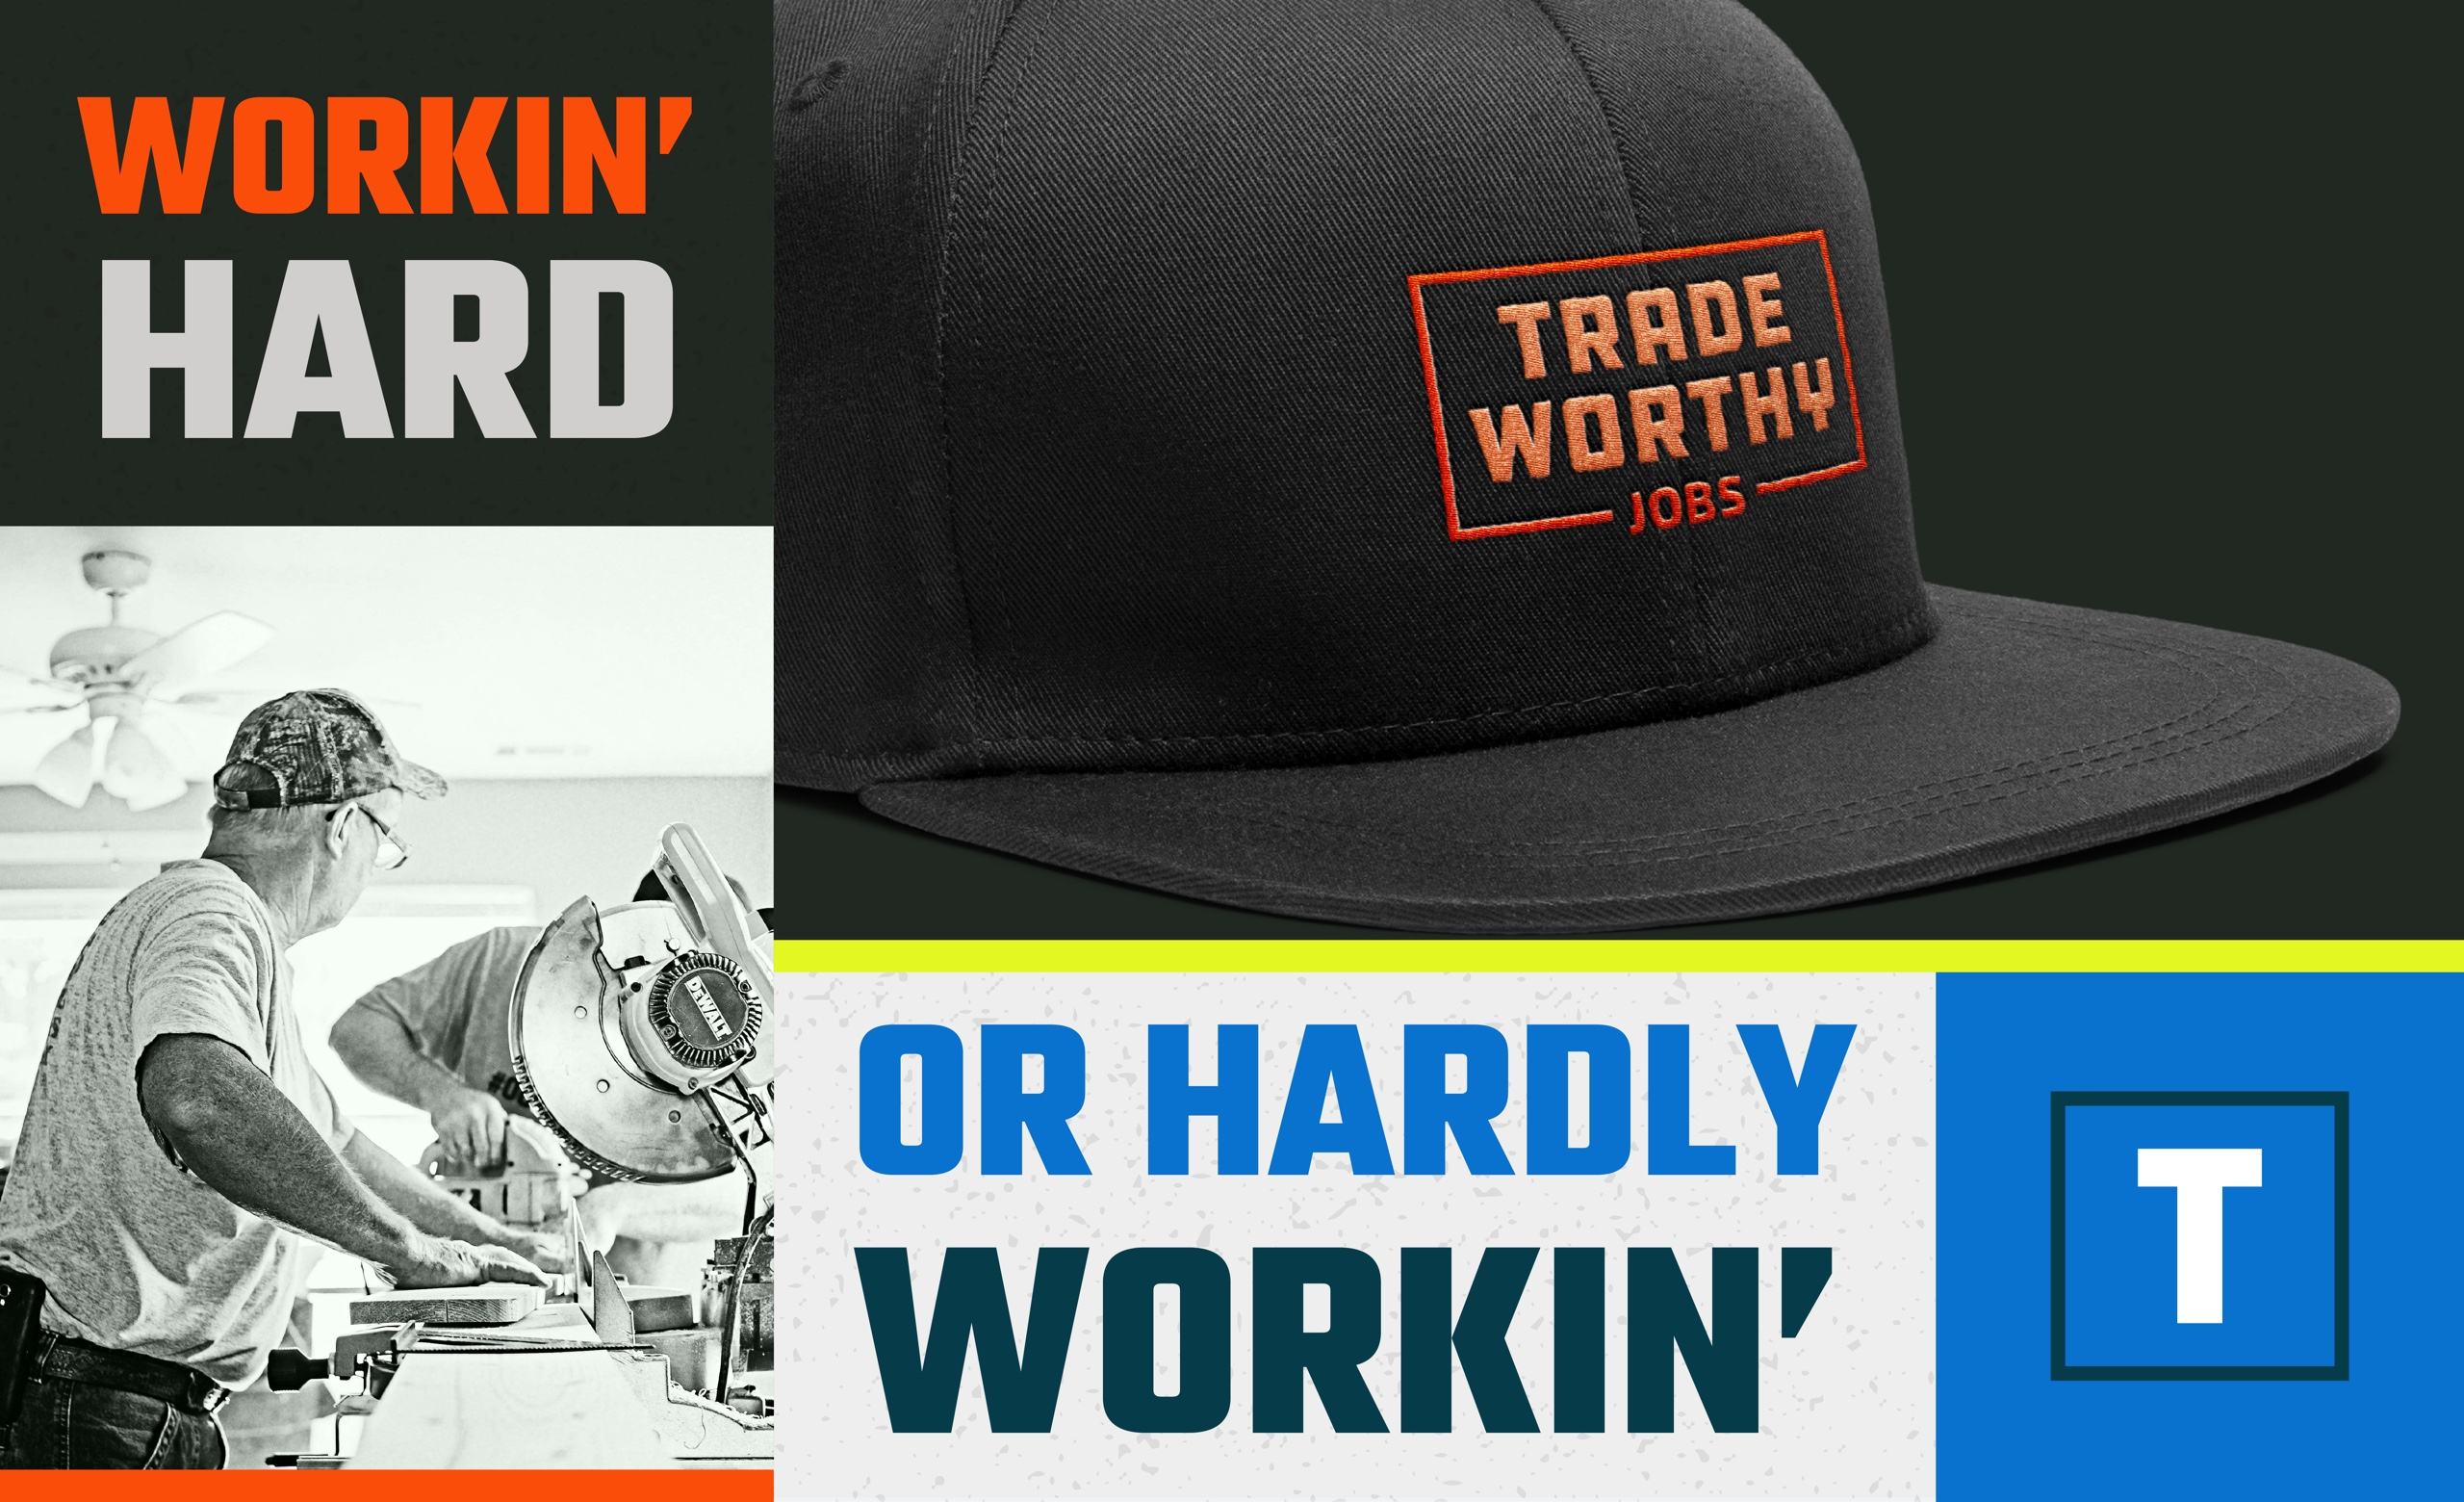 A collage of Tradeworthy Jobs's brand elements.